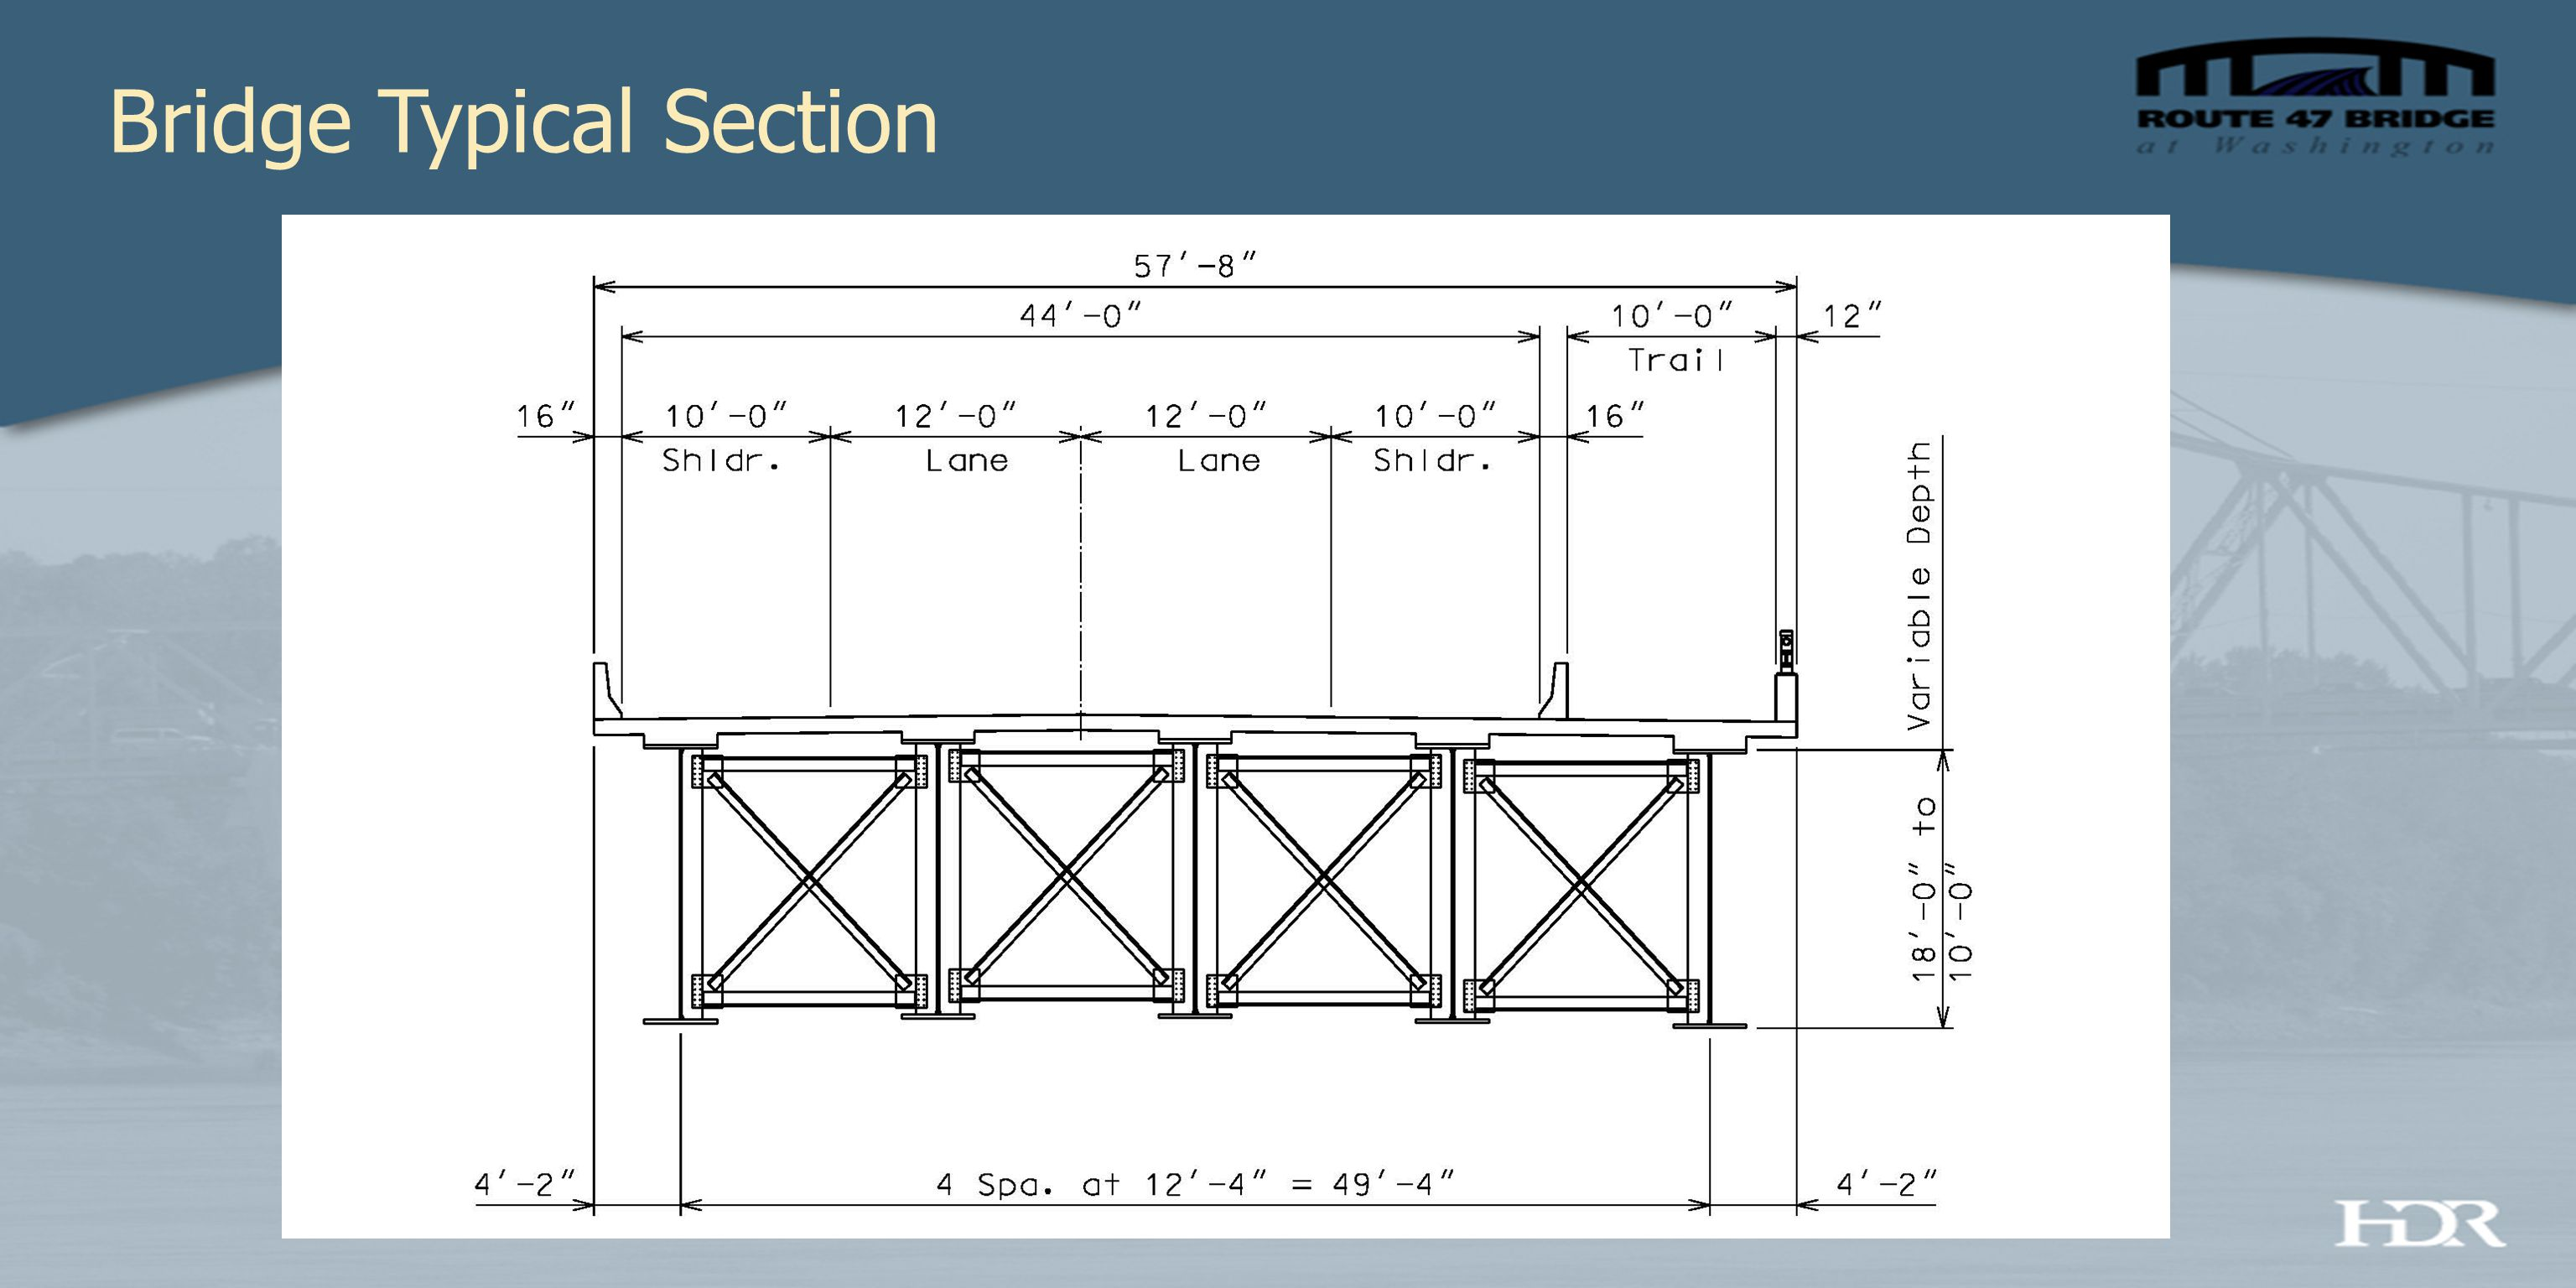 Bridge Typical Section